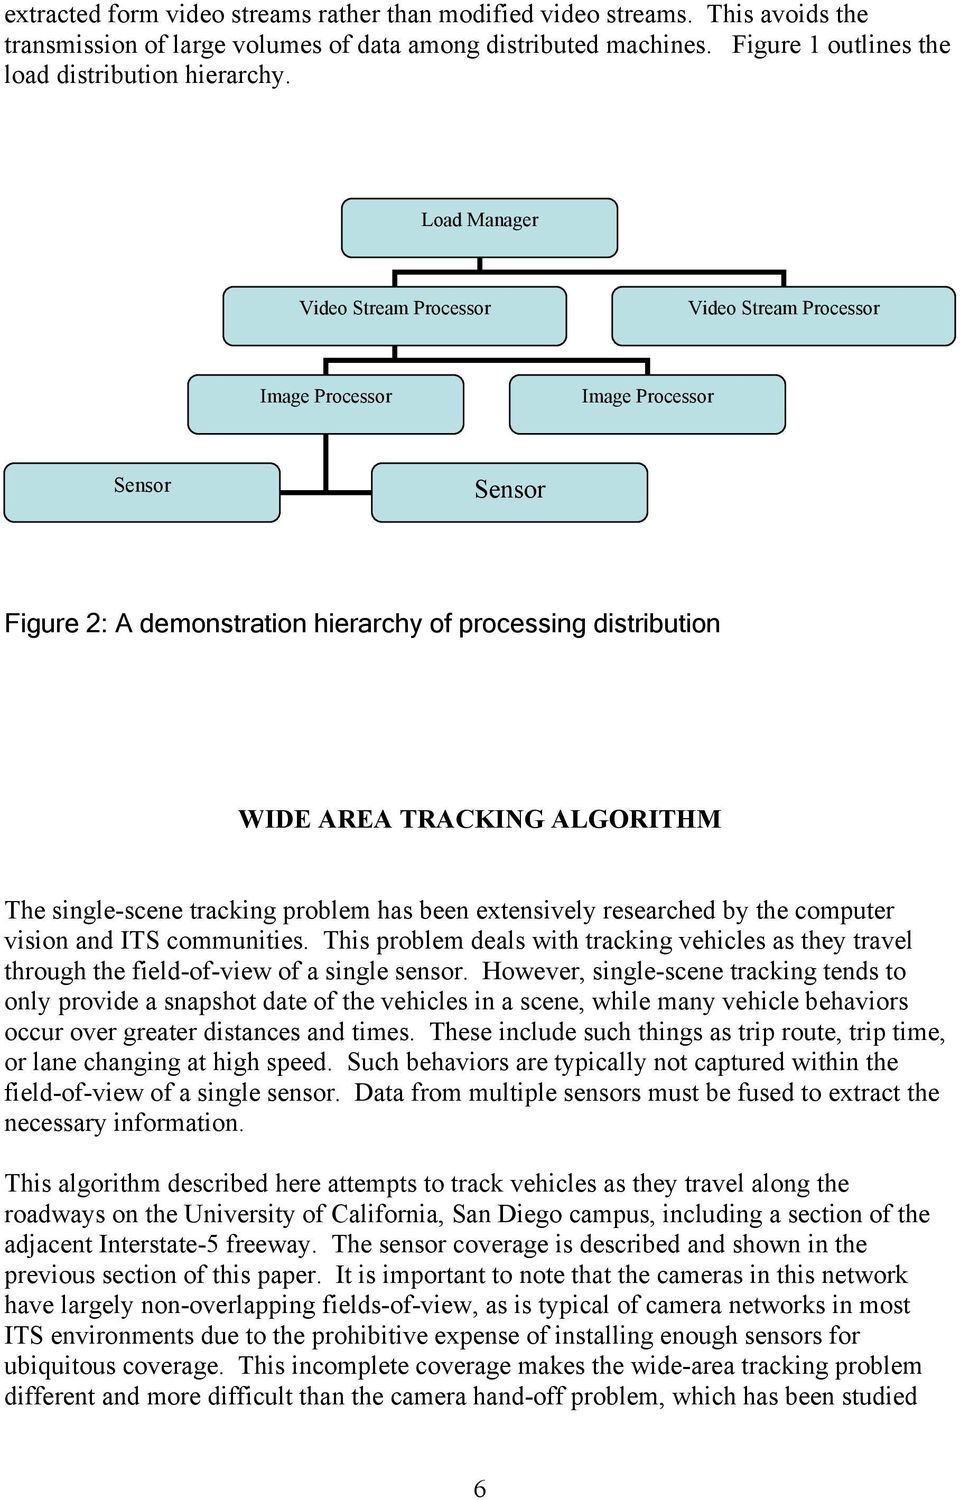 The single-scene tracking problem has been extensively researched by the computer vision and ITS communities.